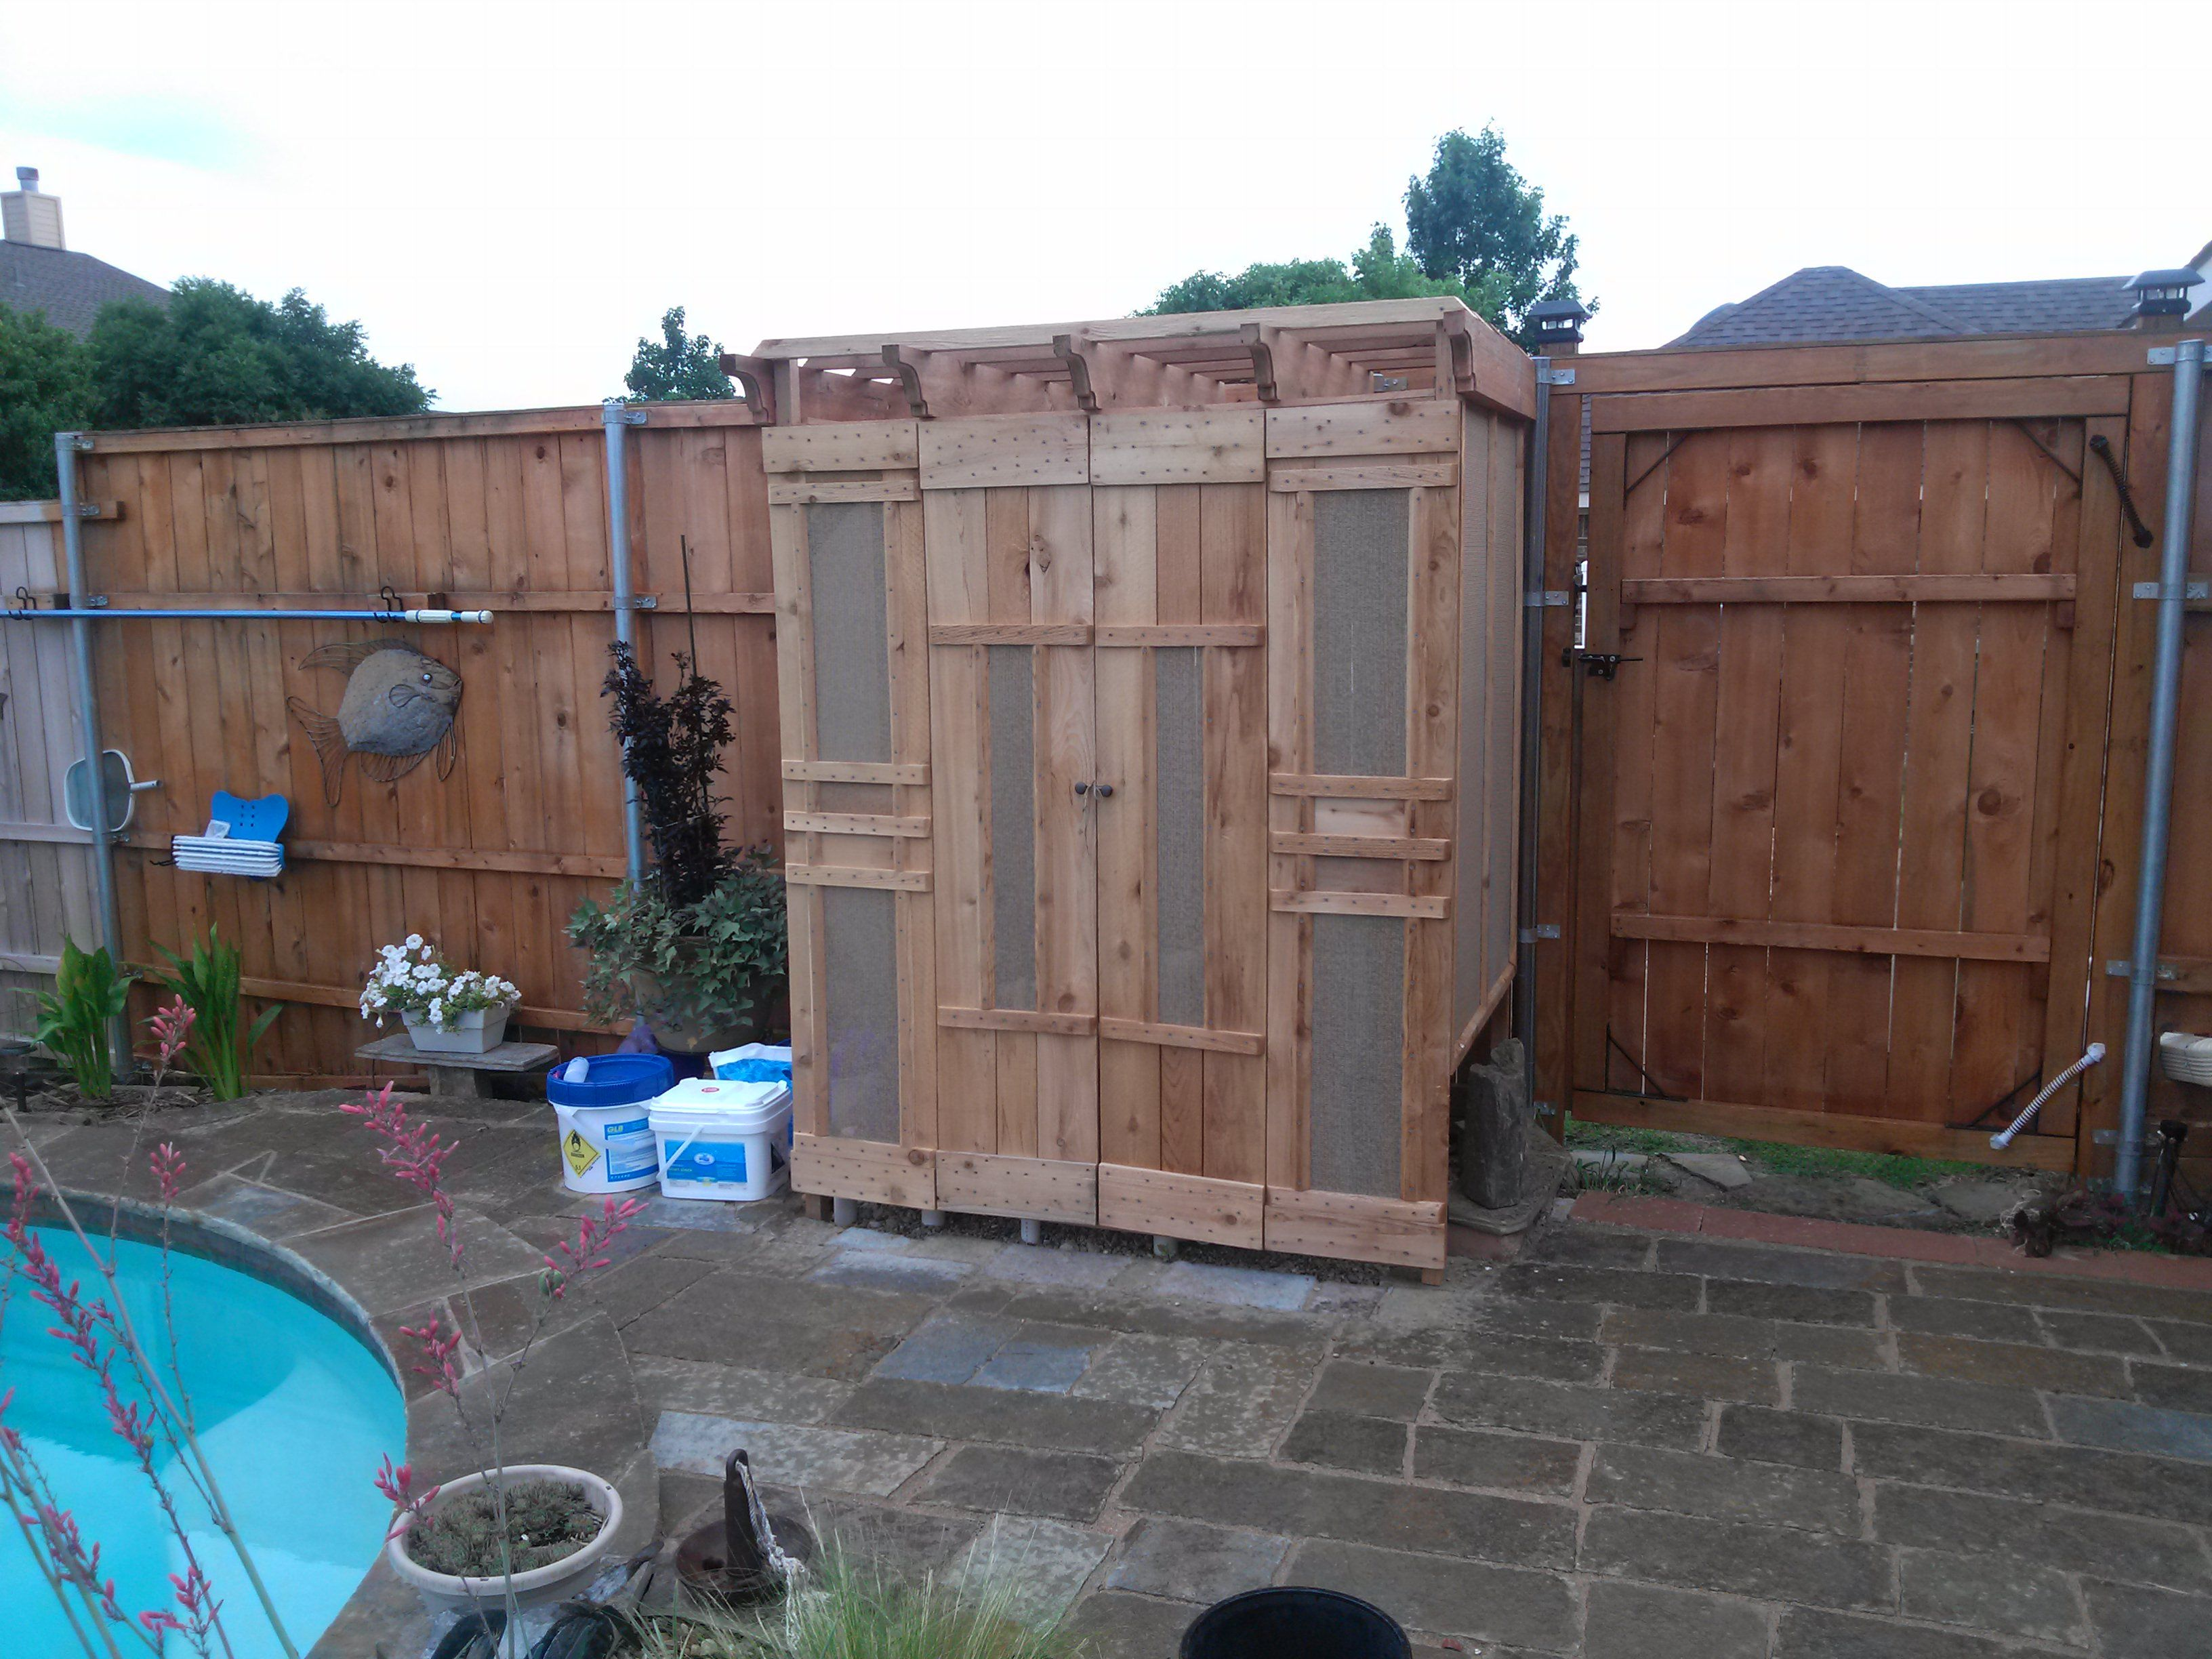 Pool Pump Shed Designs pool pump house shed design Cedar Wood Shed To Coverhide Pool Pump And Equipment I Made